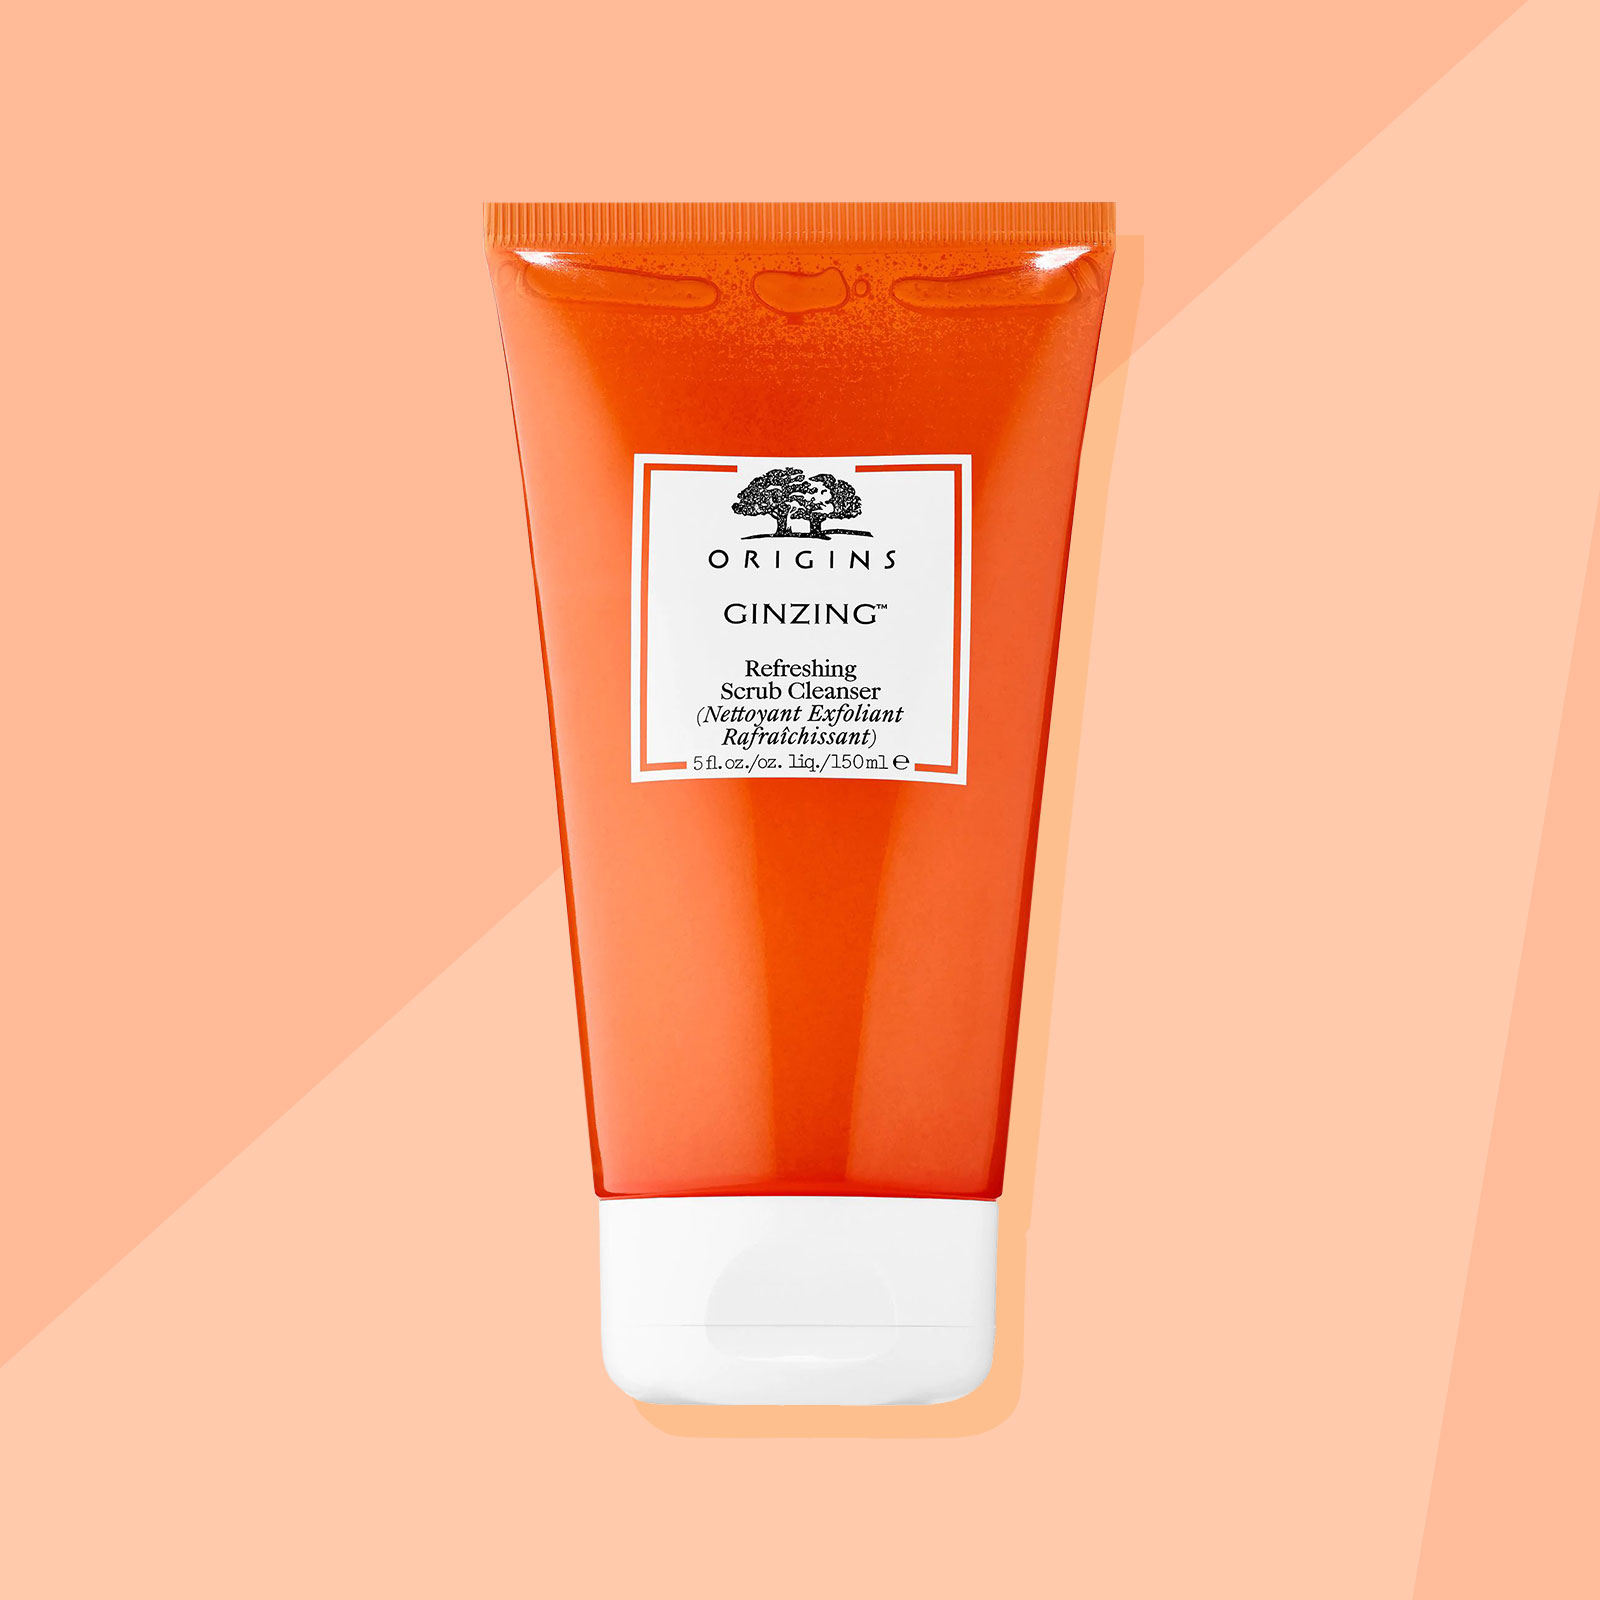 10 Facial Exfoliators That Will Completely Transform Your Skin